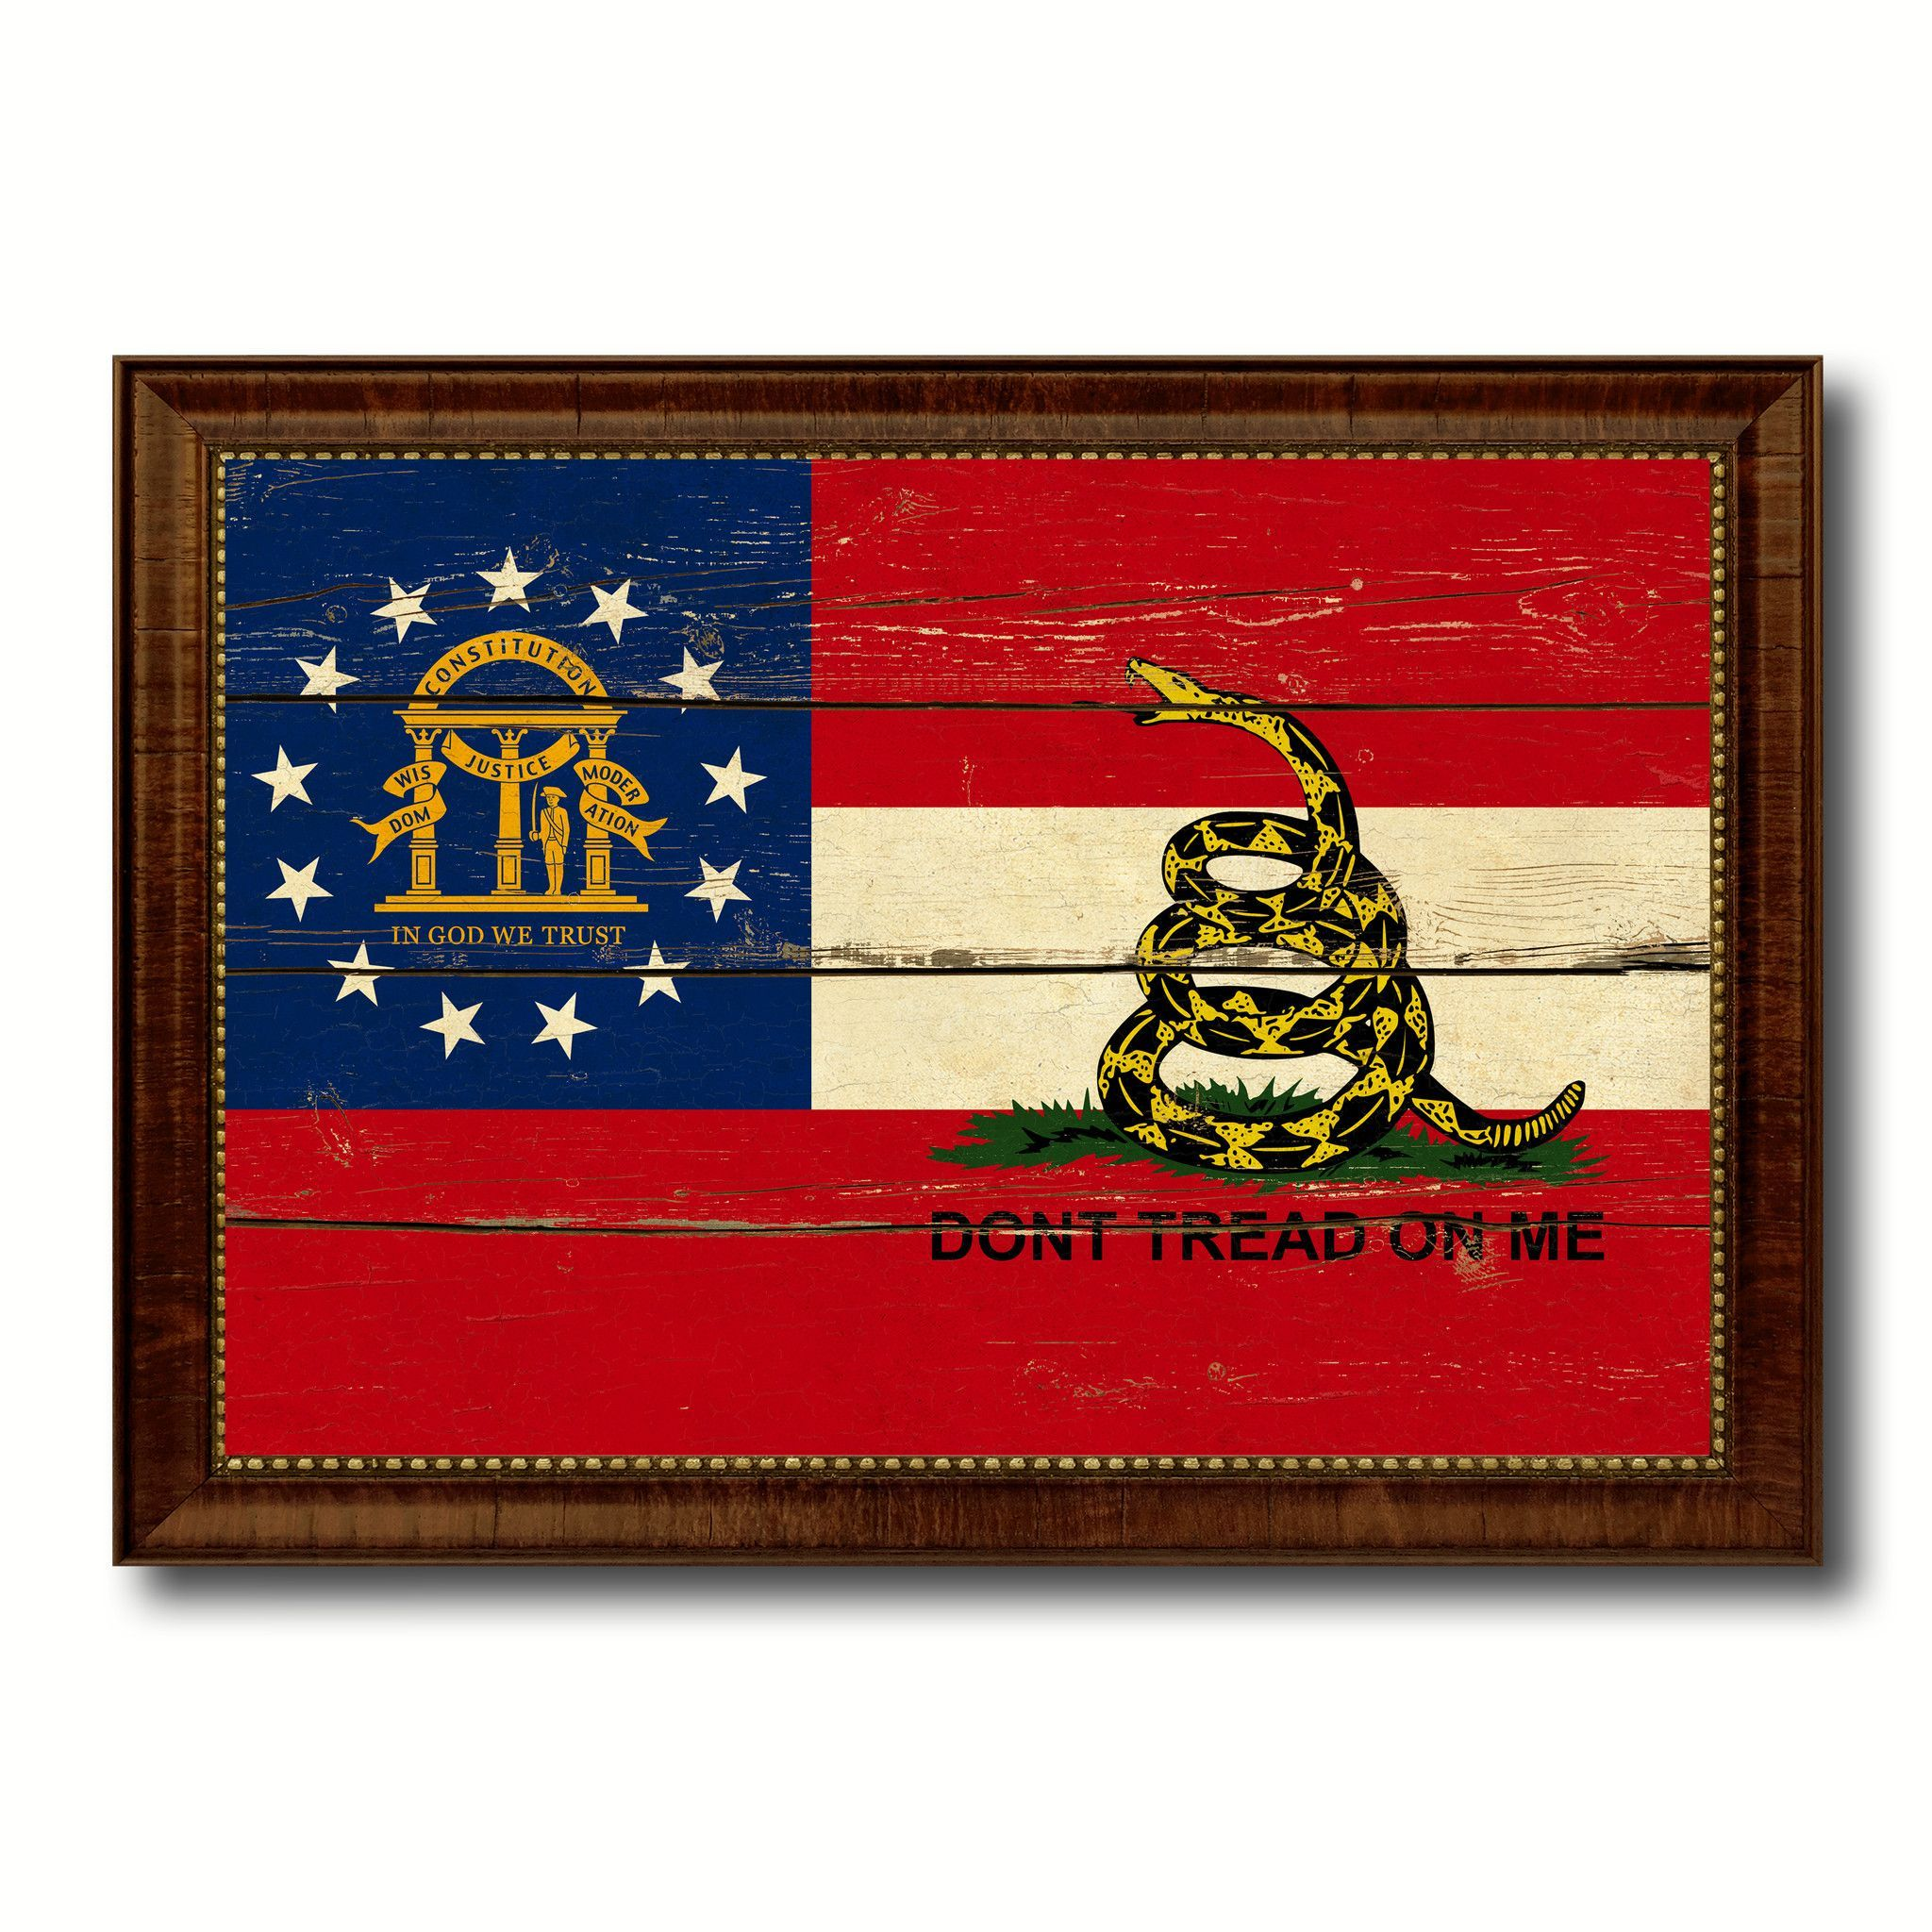 Gadsden Don't Tread On Me Georgia State Military Vintage Flag Brown Picture Frame Gifts Ideas Home Decor Wall Art